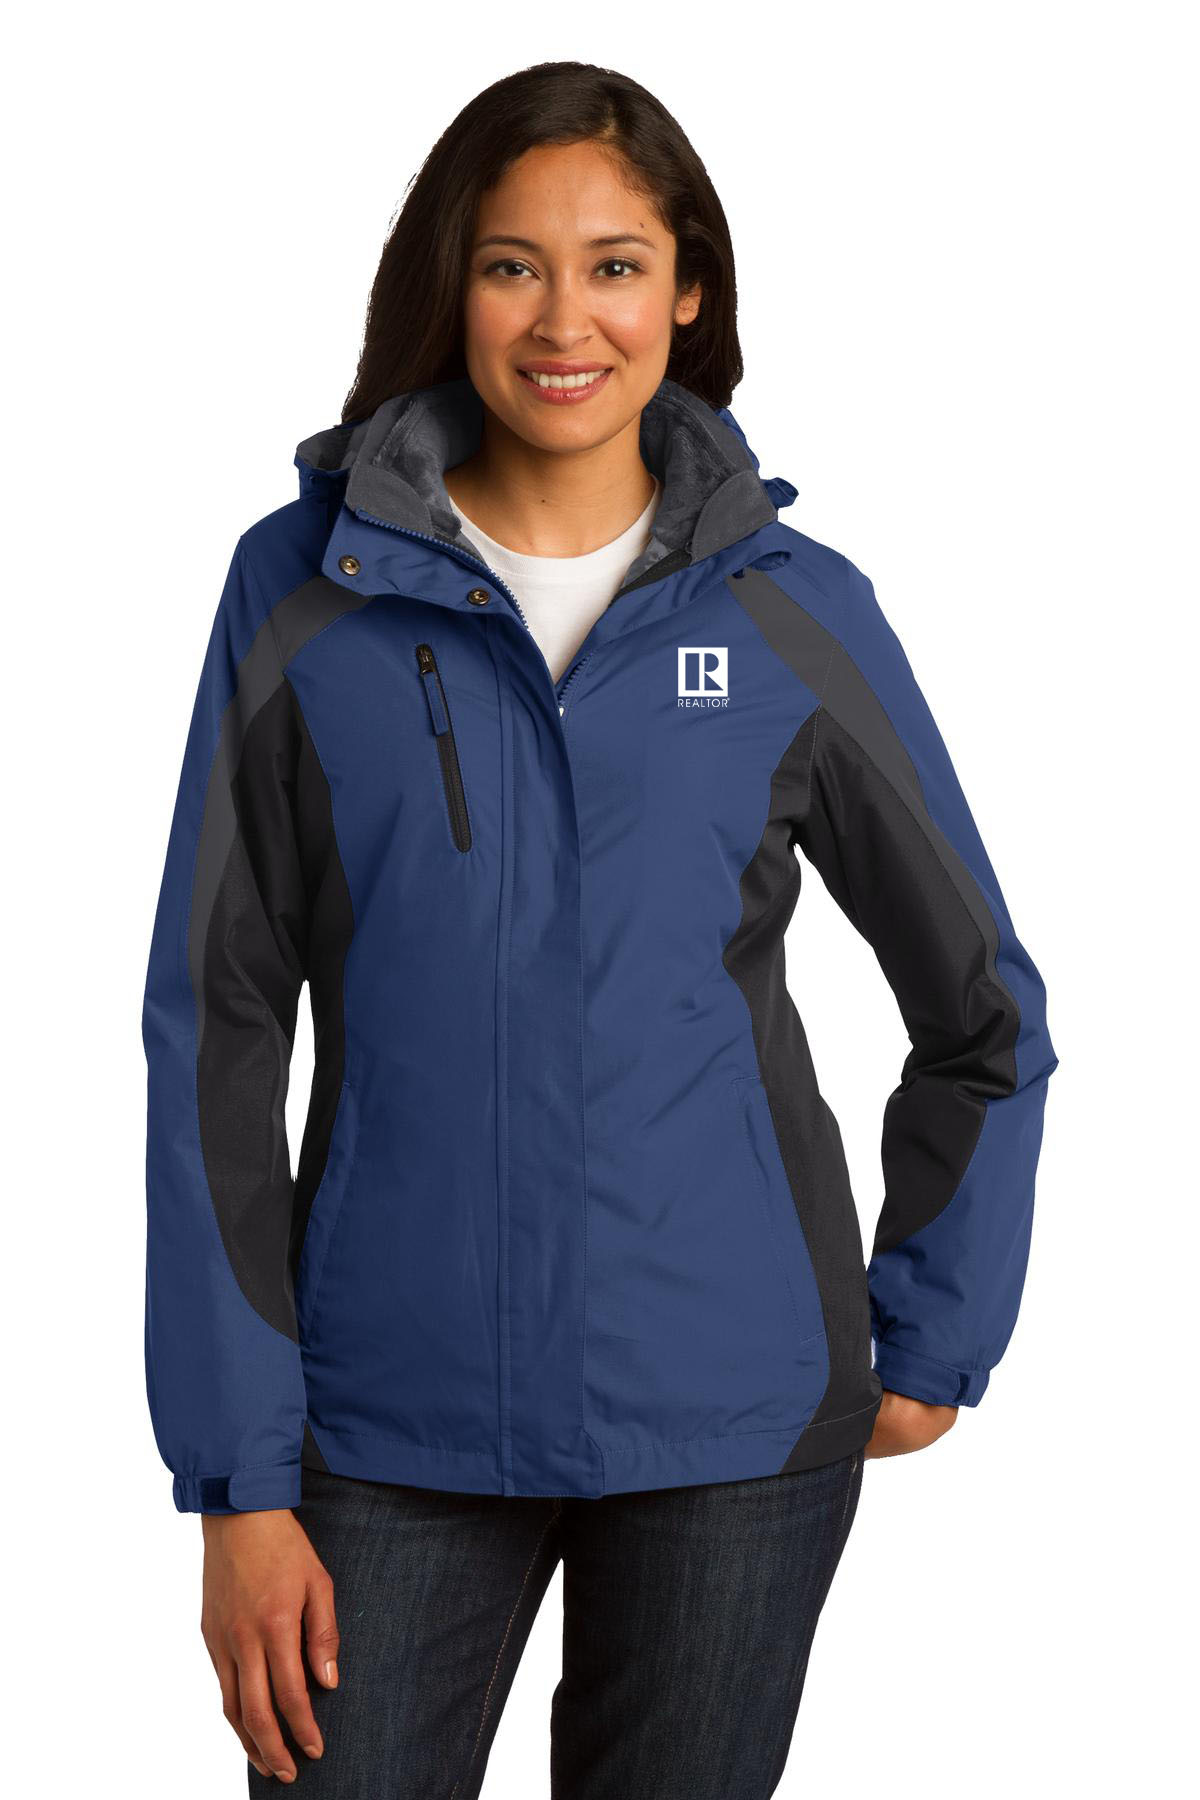 Ladies Colorblock 3-in-1 Jacket